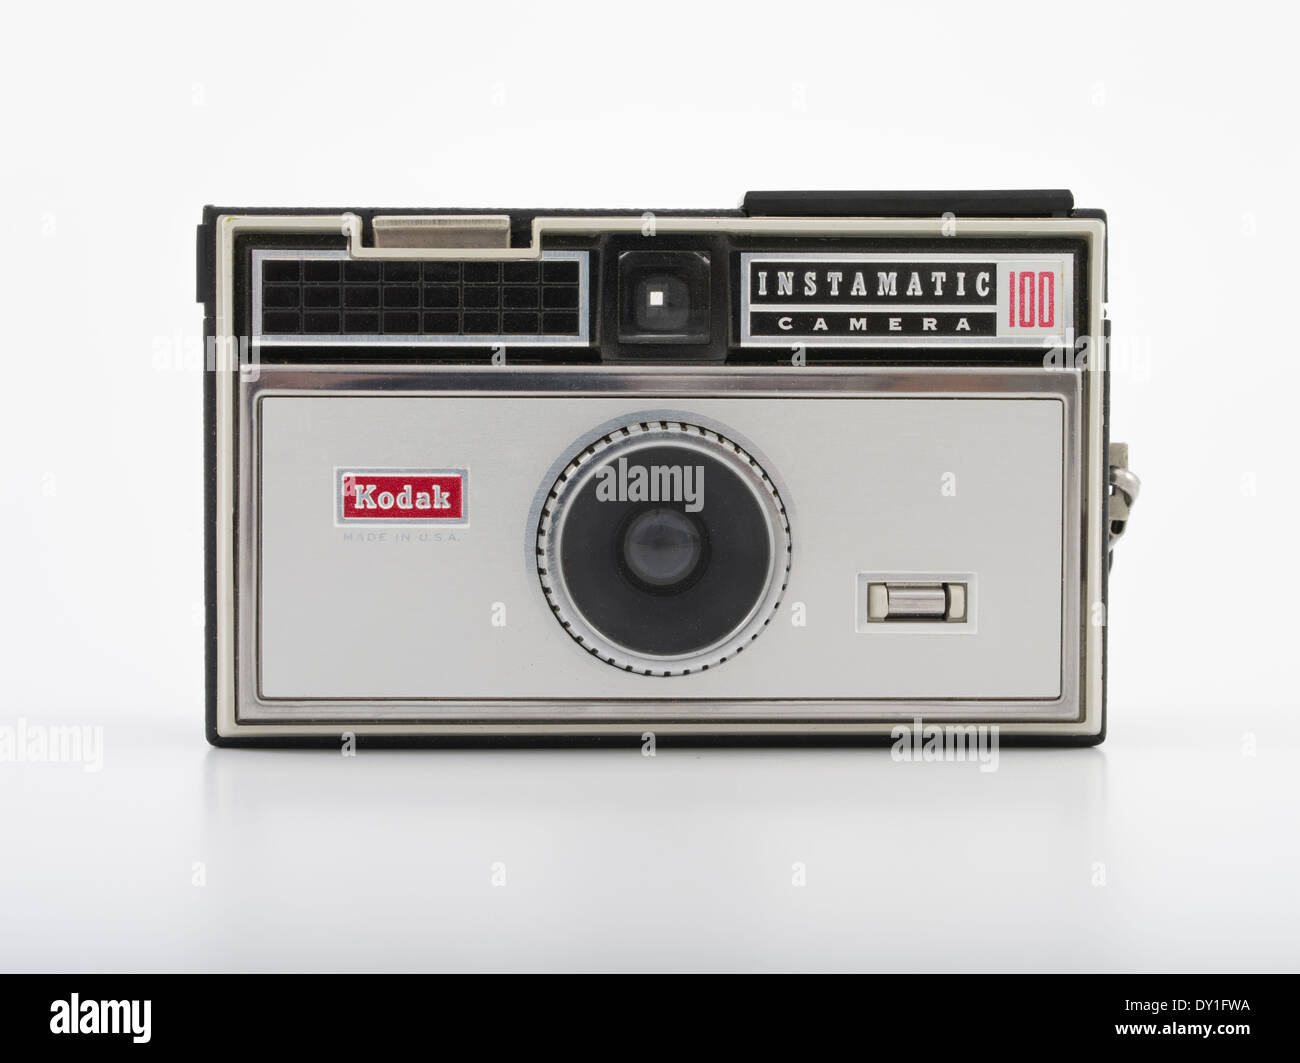 Kodak Instamatic 100 Film Camera with flash that uses 126 format film. Kodak 1963. - Stock Image